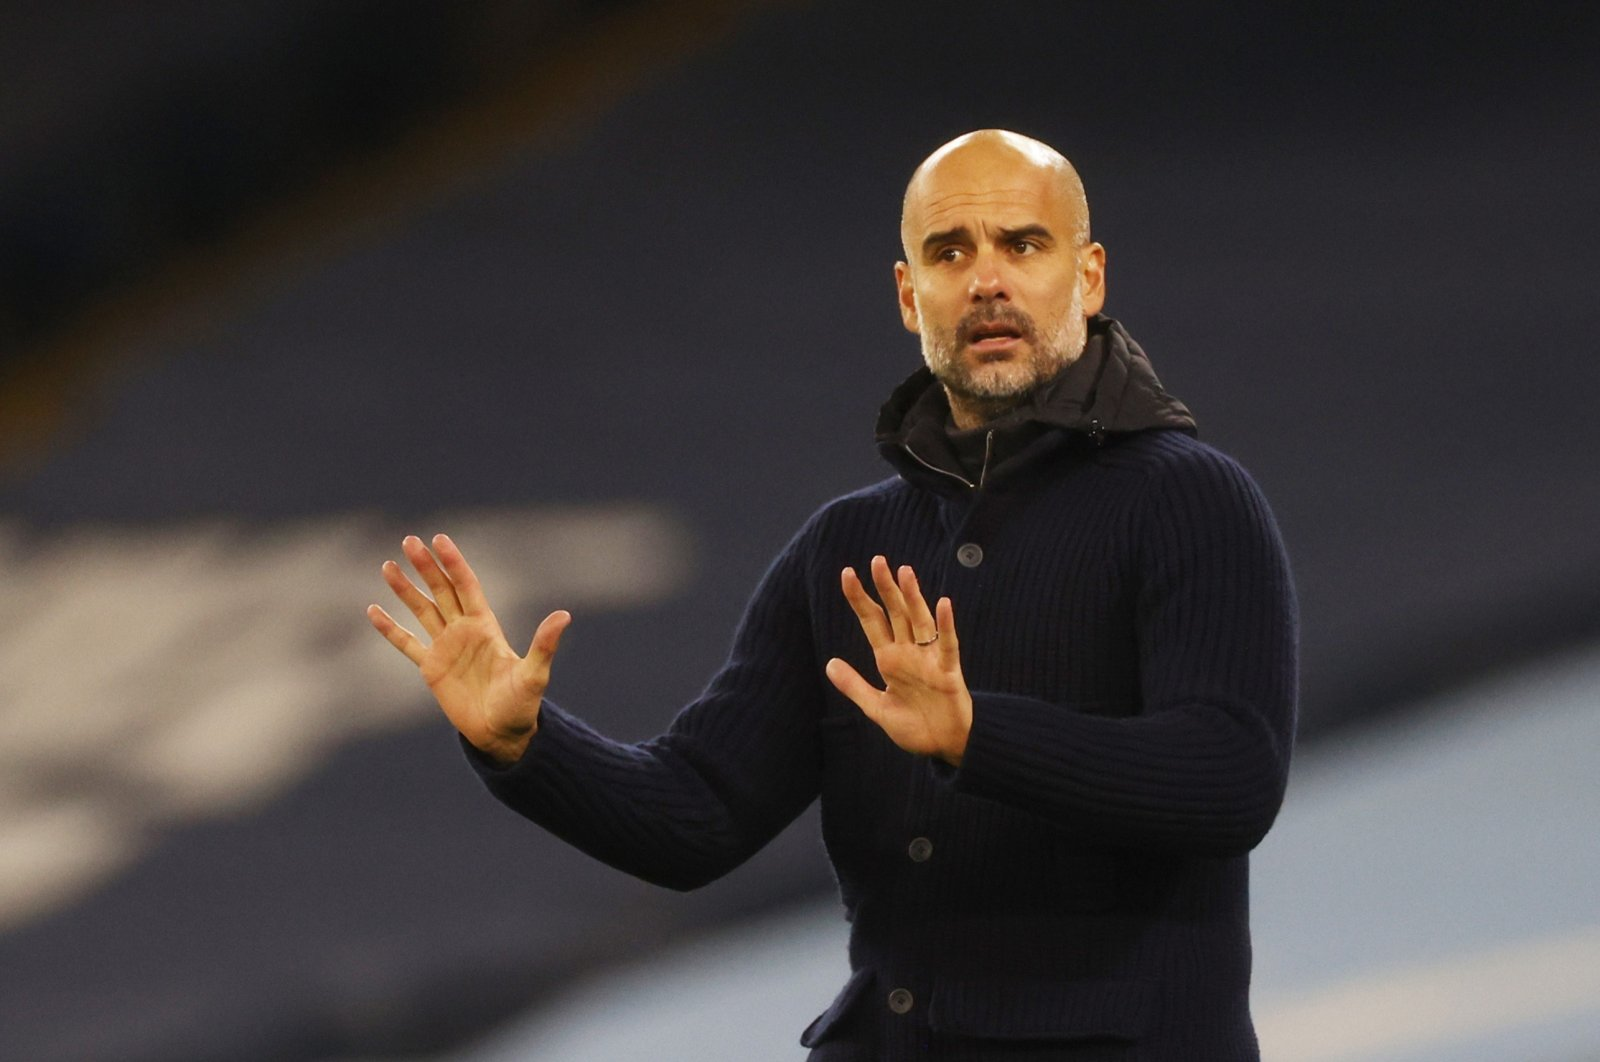 Manchester City manager Pep Guardiola reacts during a Champions League match against Olympiacos, in Manchester, Britain, Nov. 3, 2020. (Reuters Photo)